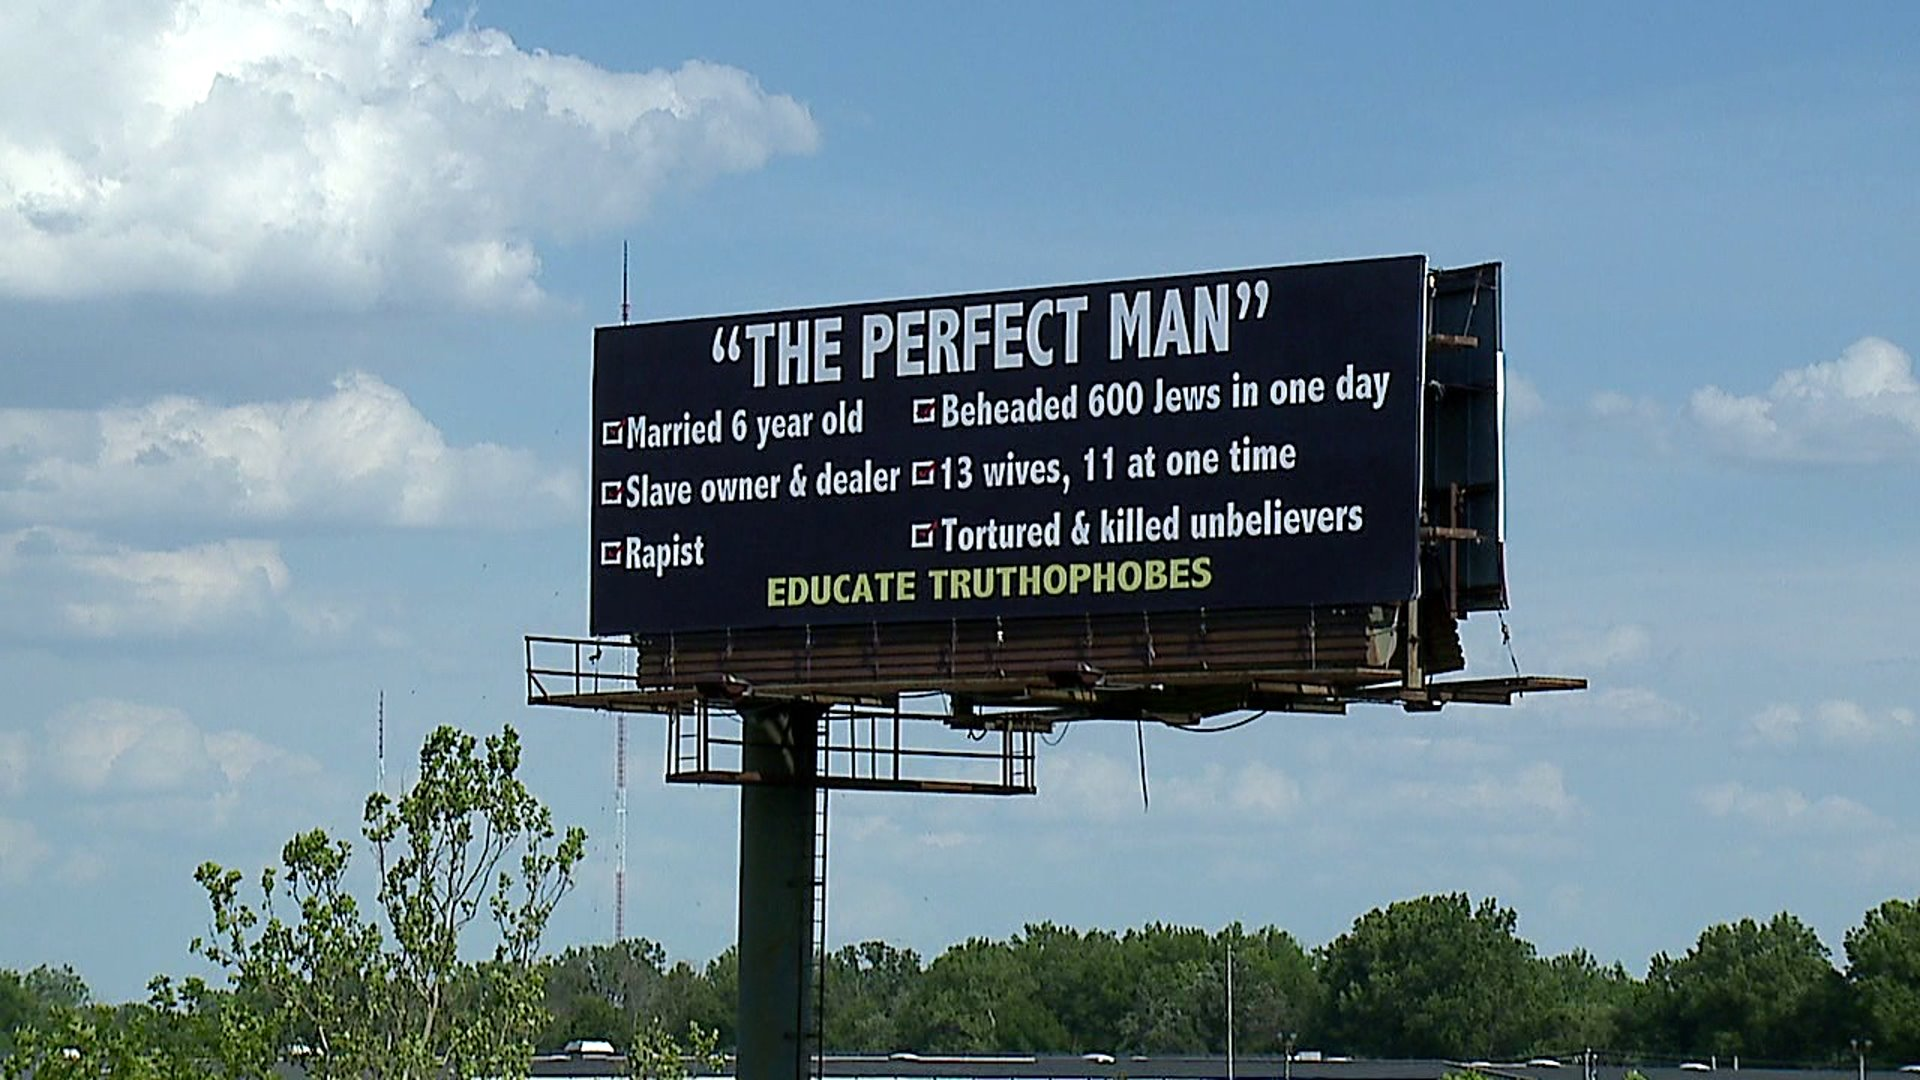 Muslims appalled at perfect man billboard on indiana highway photo wxin stopboris Images